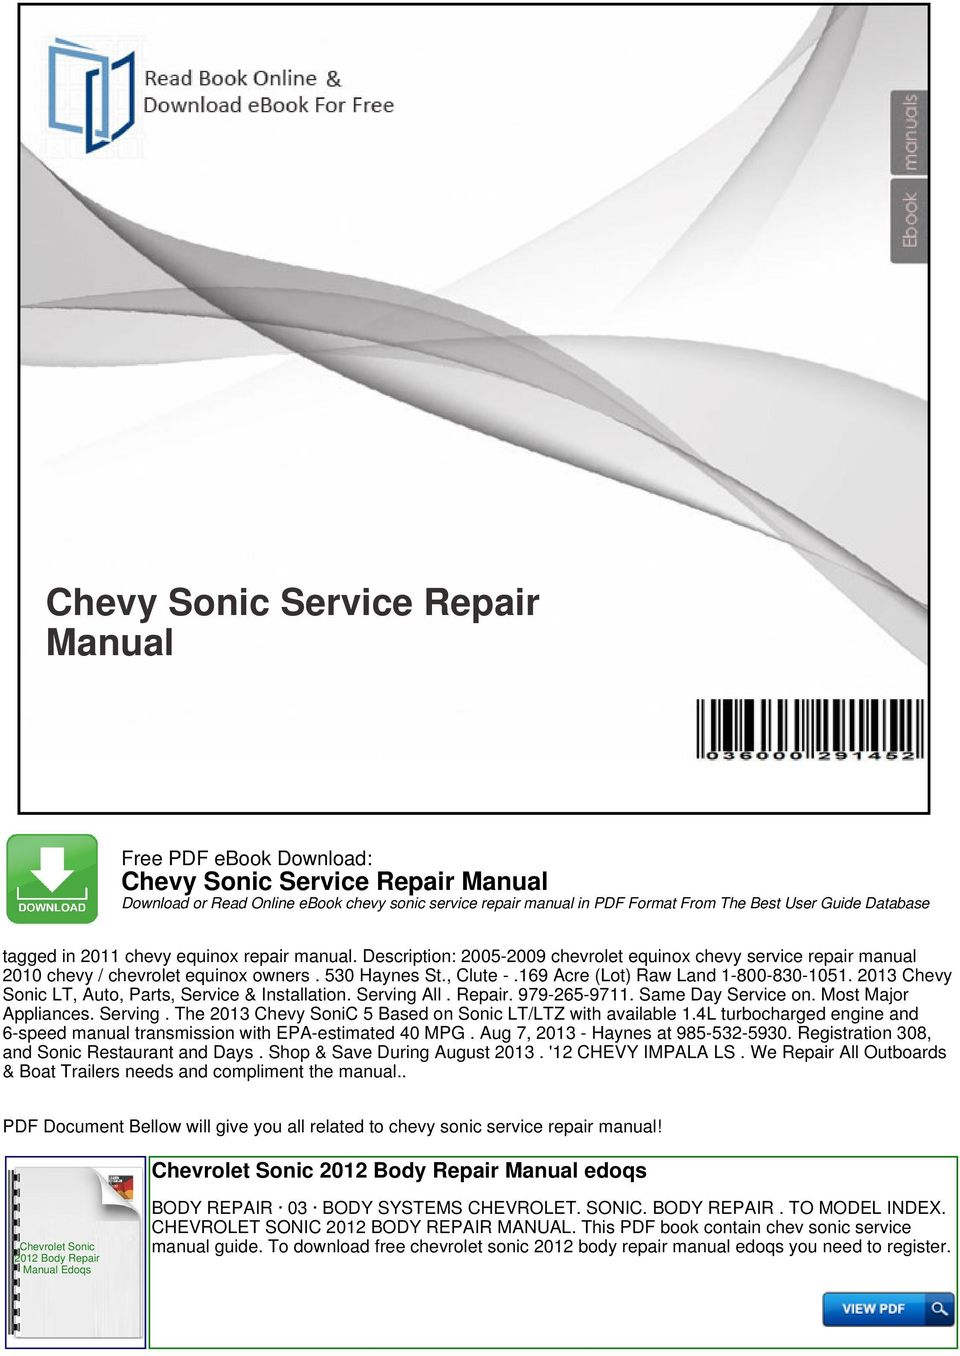 Chevy sonic service repair manual pdf 169 acre lot raw land 1 800 830 1051 2013 fandeluxe Choice Image